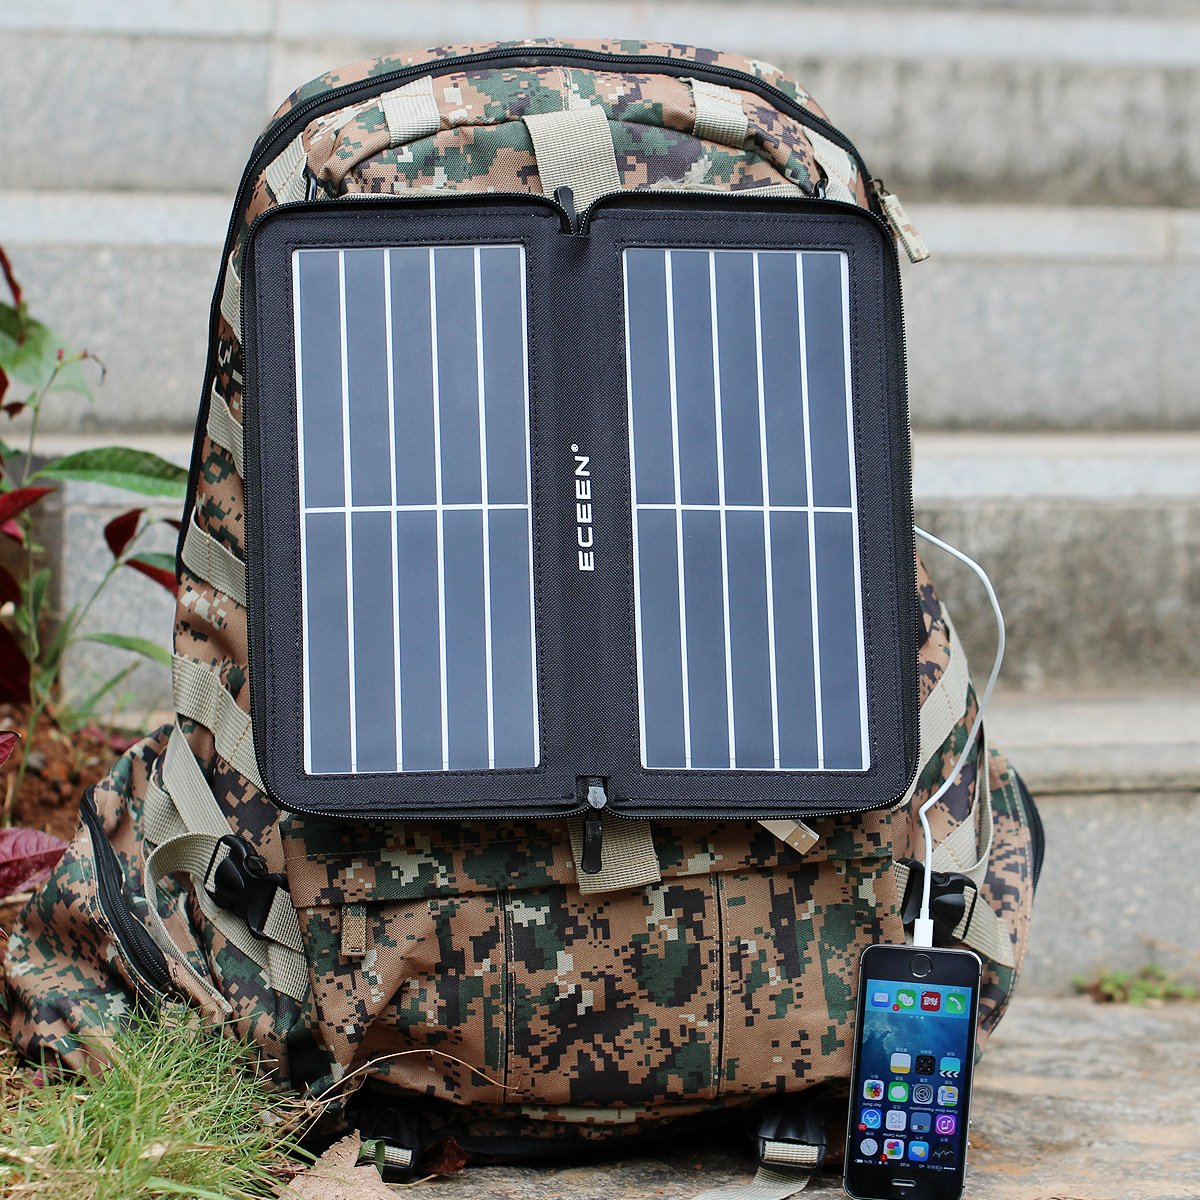 ECEEN Folding Solar Panel Phone Charger With USB Port,Zipper Pack for iPhone, iPad, iPods, Samsung, Android Smartphones Speaker Gopro All 5V USB-Charging Devices (Black) by ECEEN (Image #6)